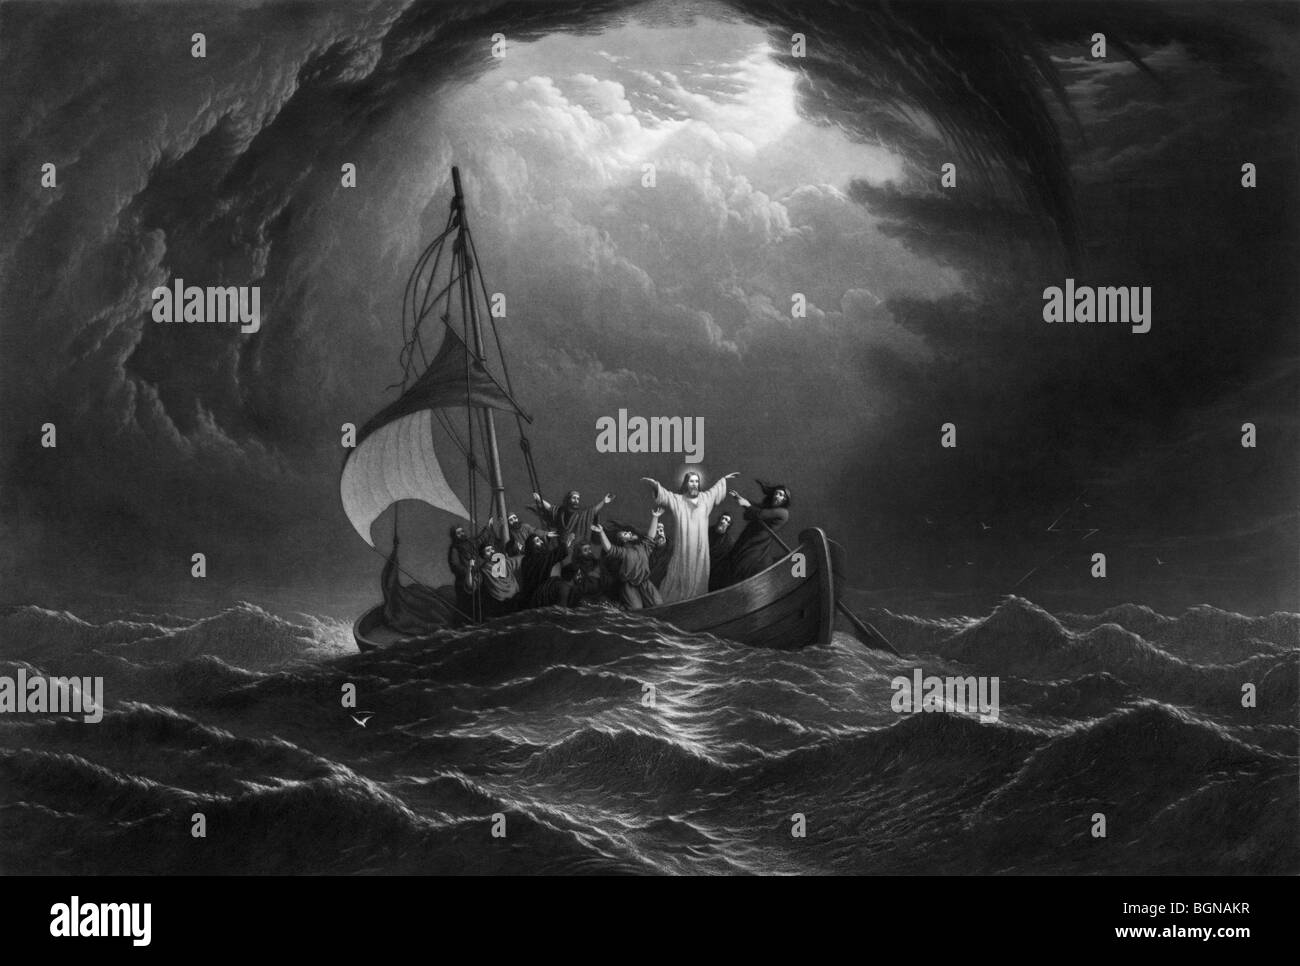 Print entitled 'Christ Stilling the Tempest' and depicting one of the miracles of Jesus - calming a storm - Stock Image